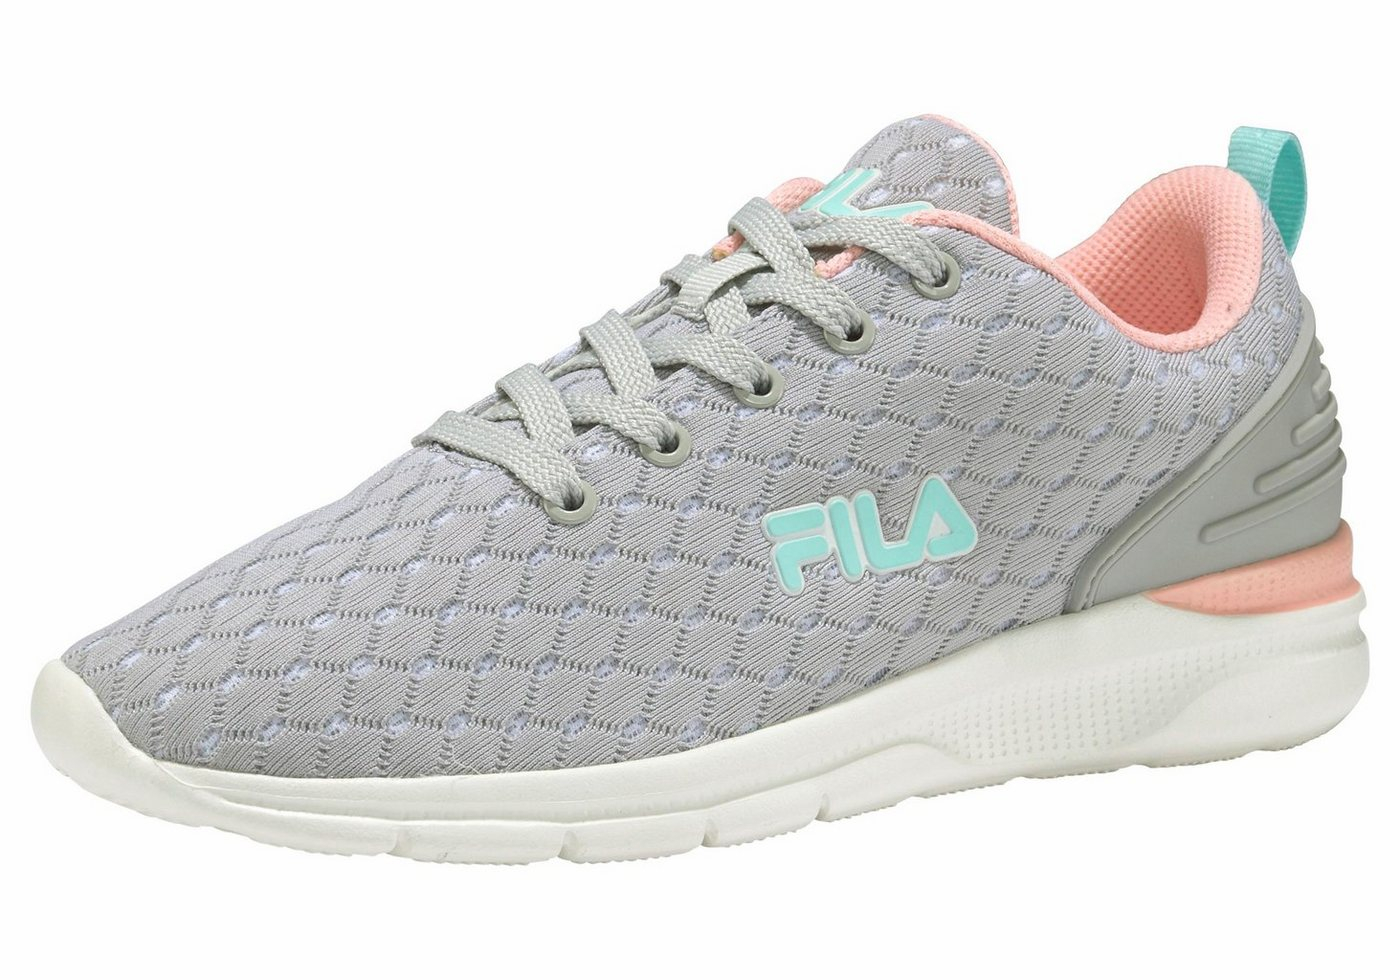 Fila »Fury Run 3 Low Wmn« Sneaker